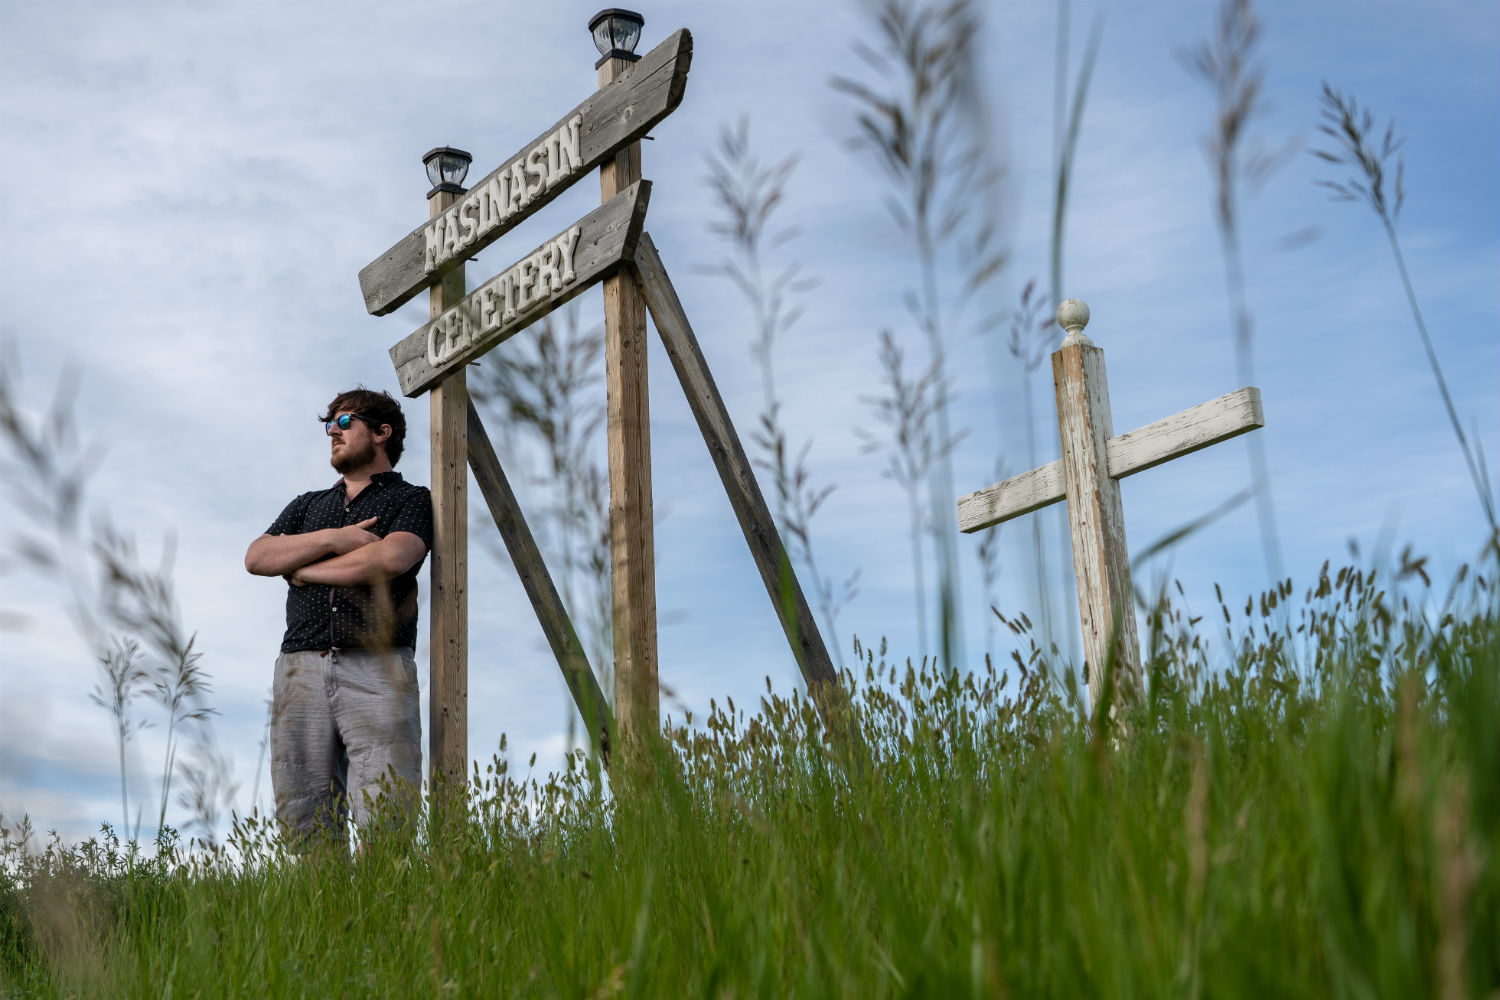 Cody Kapscos stands by a new sign for the old Masinasin Cemetery in southern Alberta. He took it upon himself to restore the small graveyard after coming across long-forgotten headstones in a field. (Vincent Bonnay/Radio-Canada)